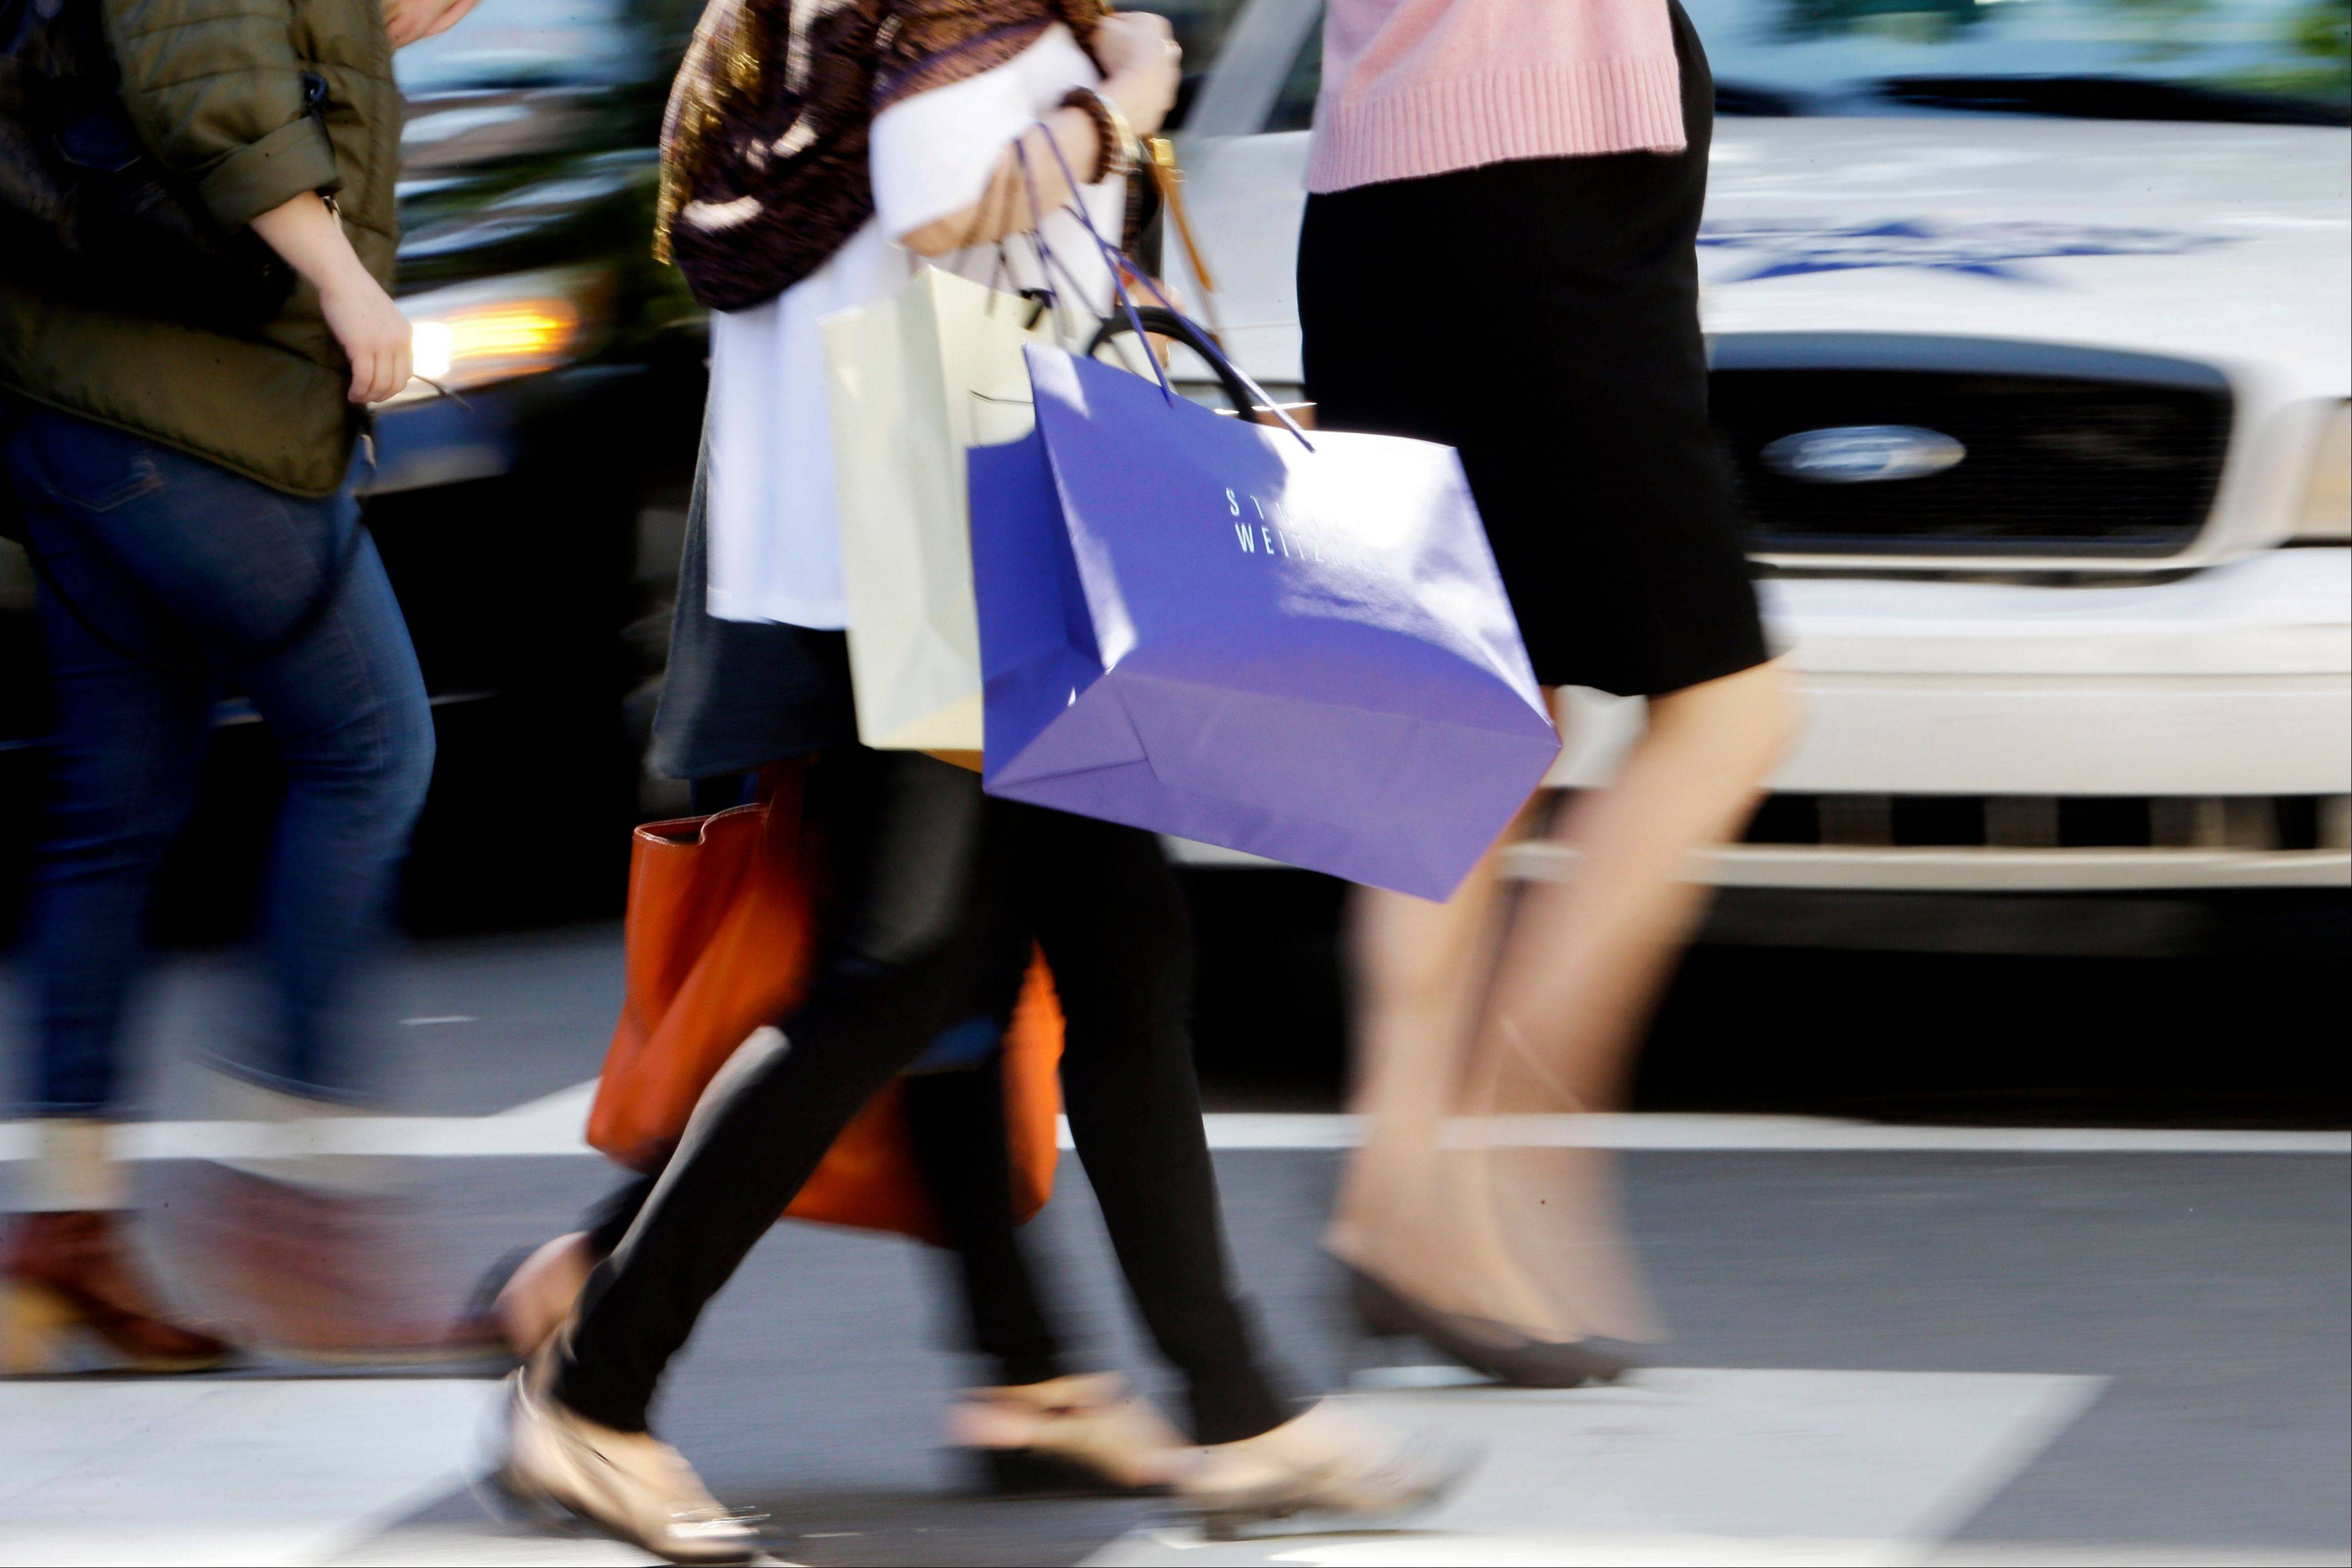 Pedestrians with shopping bags cross a street in Philadelphia. Americans' confidence in the economy fell slightly in September from August, as many became less optimistic about hiring and pay increases over the next six months.